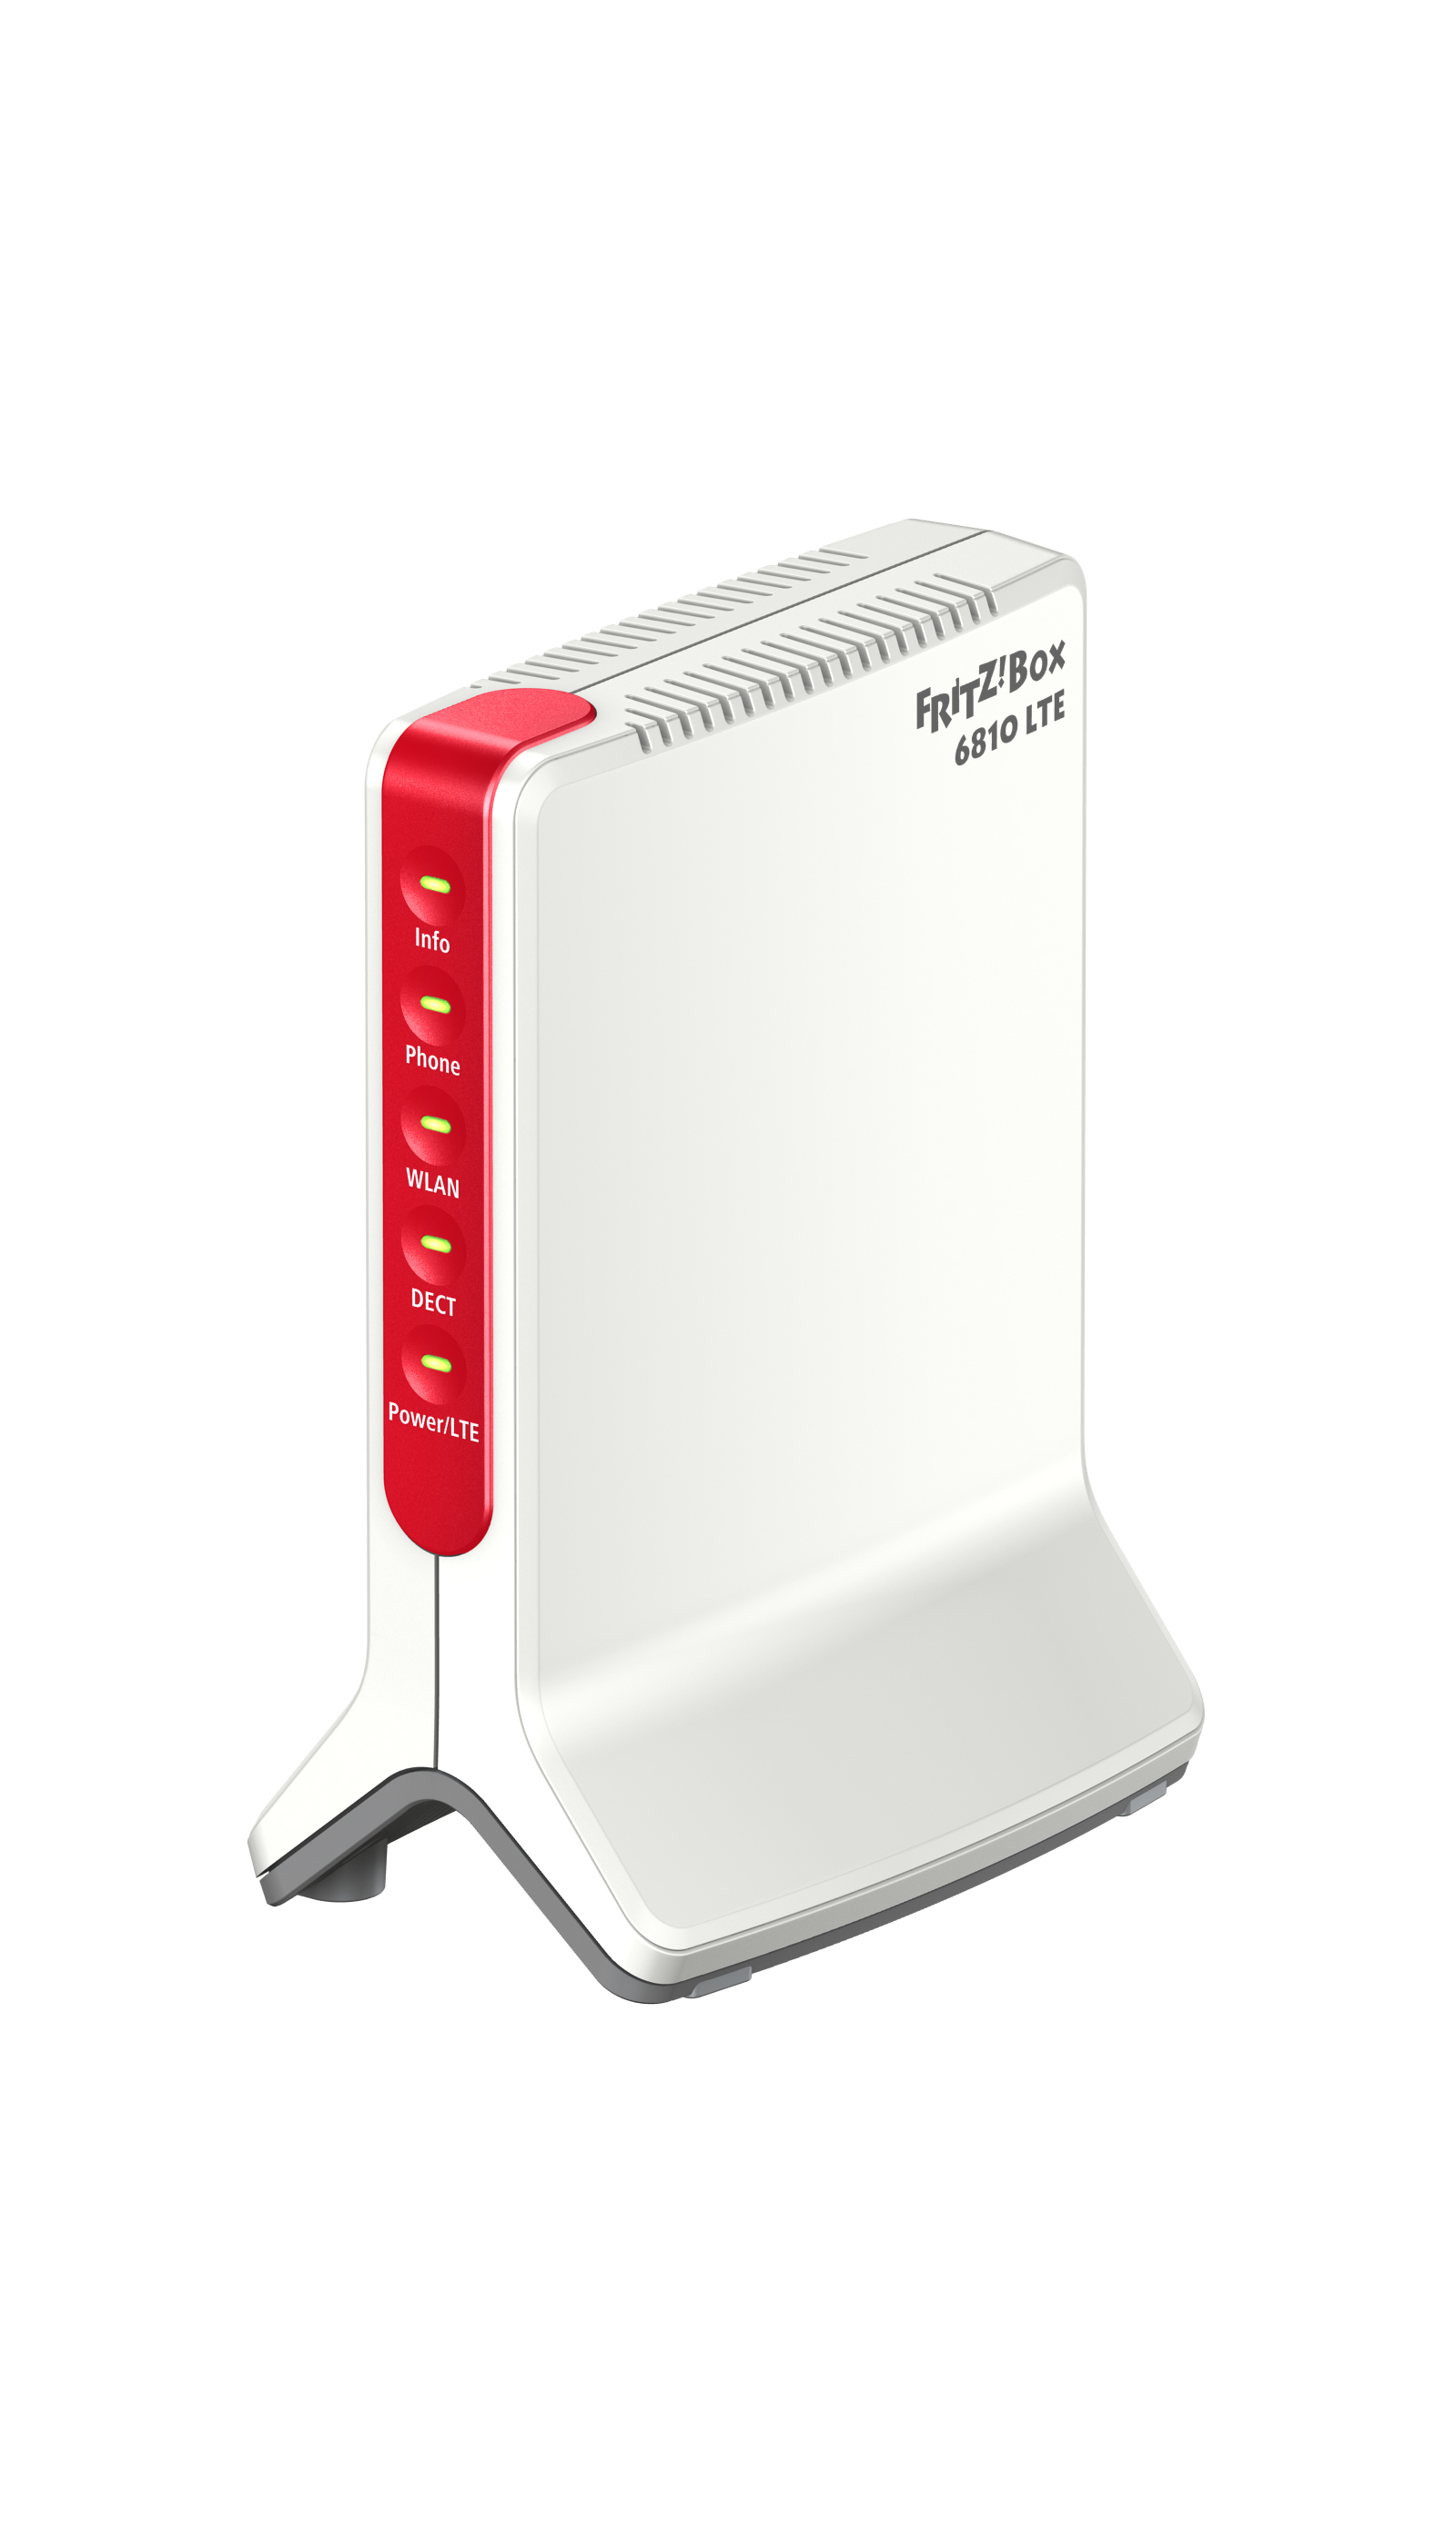 AVM FRITZ! Box 6810 - LTE Router - International